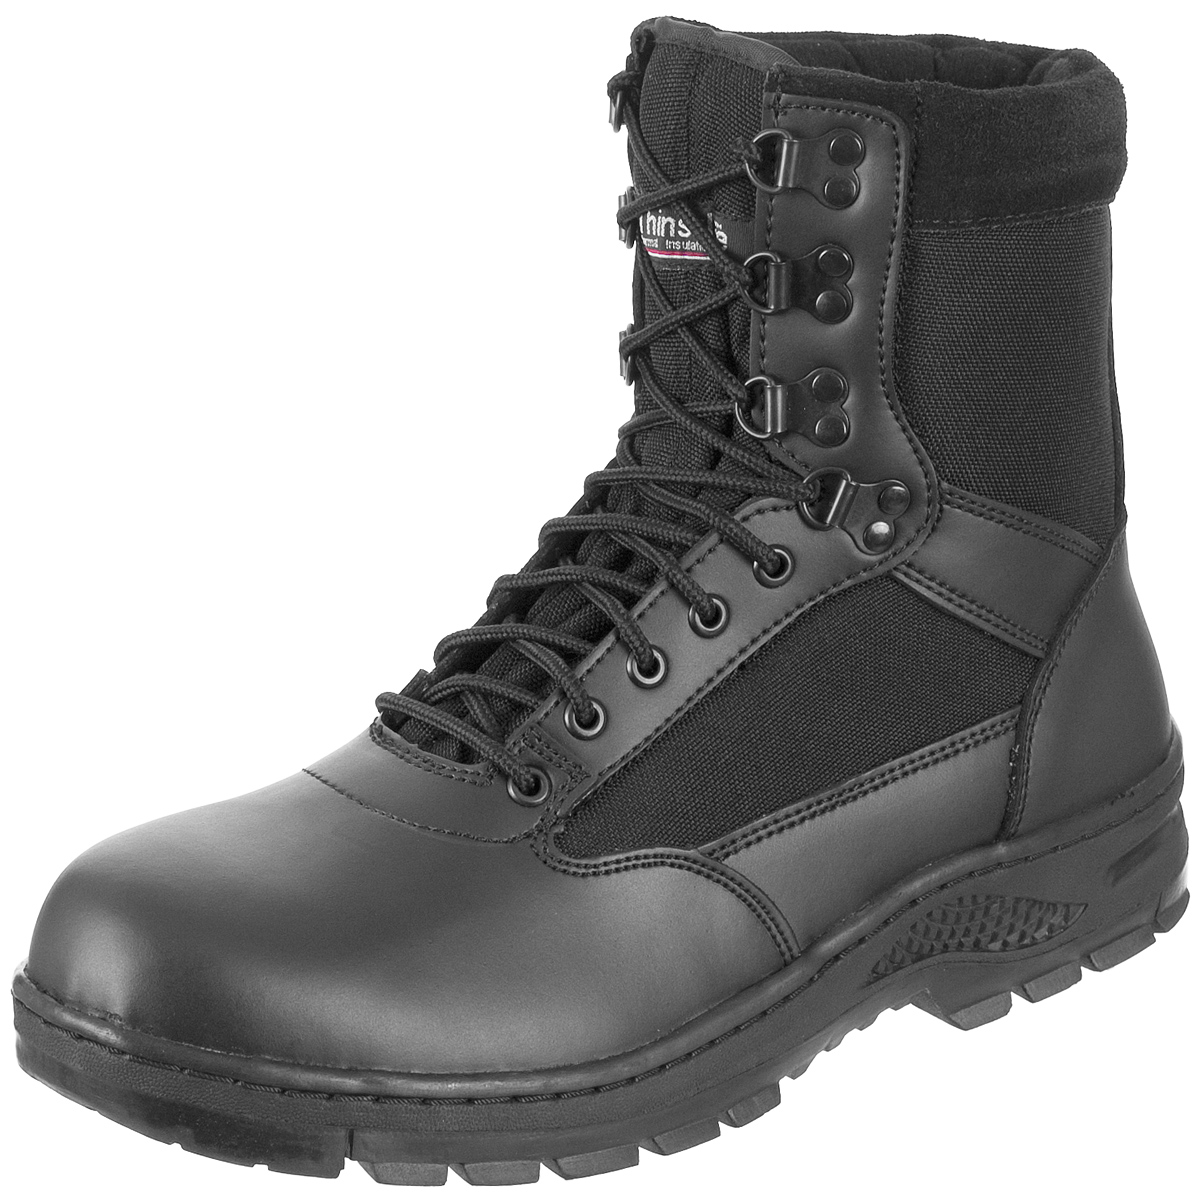 SurplUS Tactical Mens Police Security Footwear Leather Army Work 8u0026quot; Boots Black | EBay